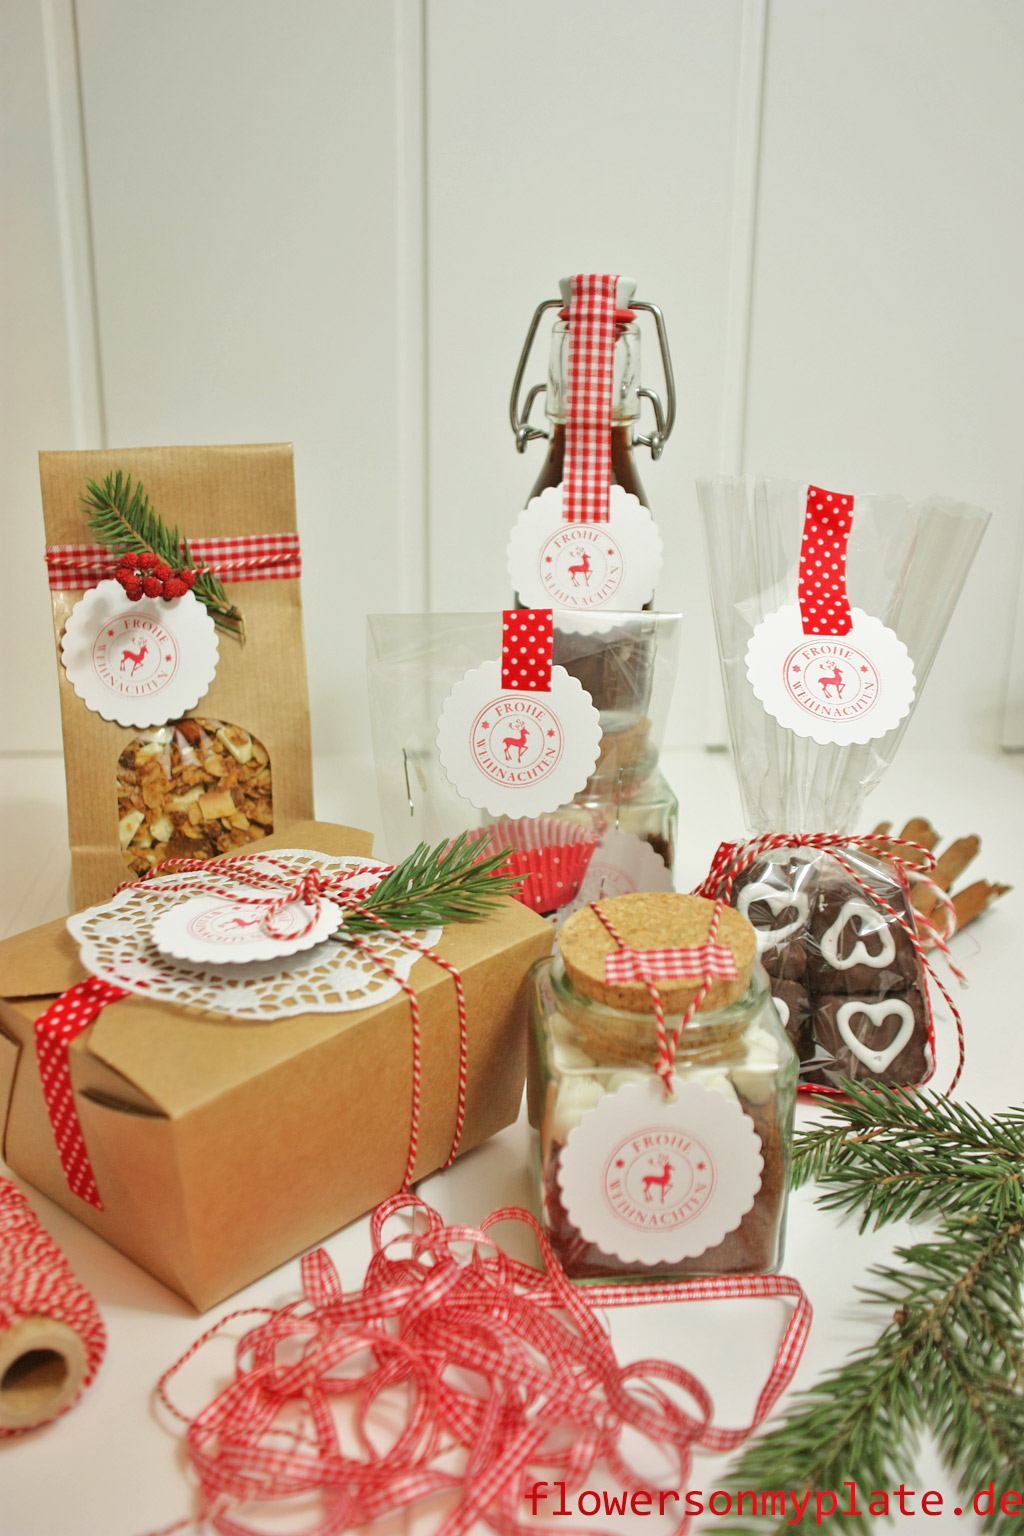 xmas-gifts-package,-flowers-on-my-plate